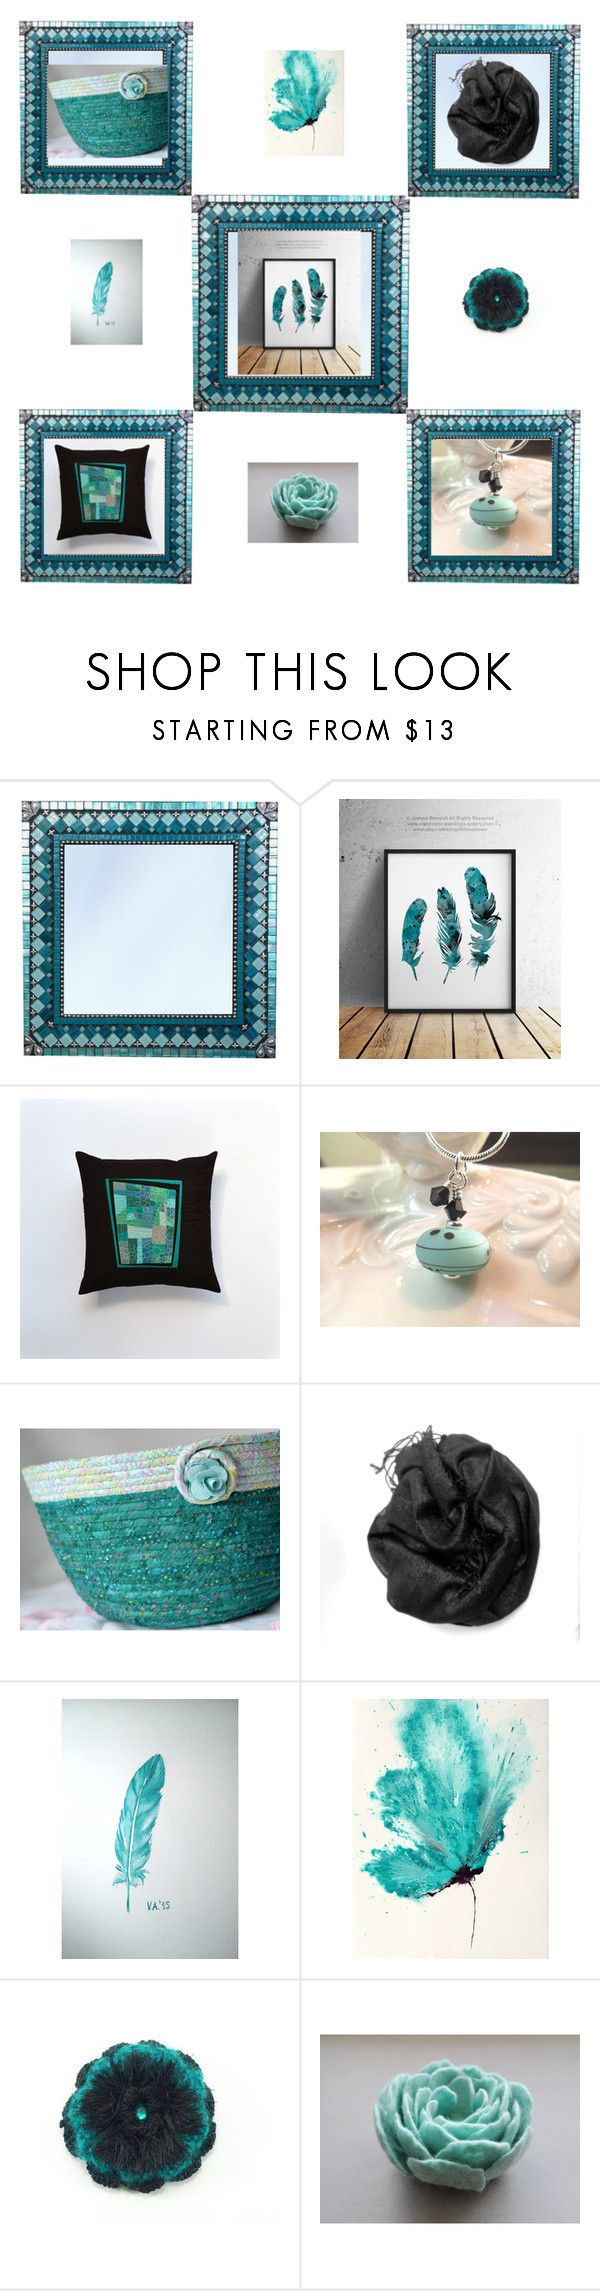 """Etsy Shops!"" by keepsakedesignbycmm ❤ liked on Polyvore featuring interior, interiors, interior design, home, home decor, interior decorating, accessories, homedecor and gifts"